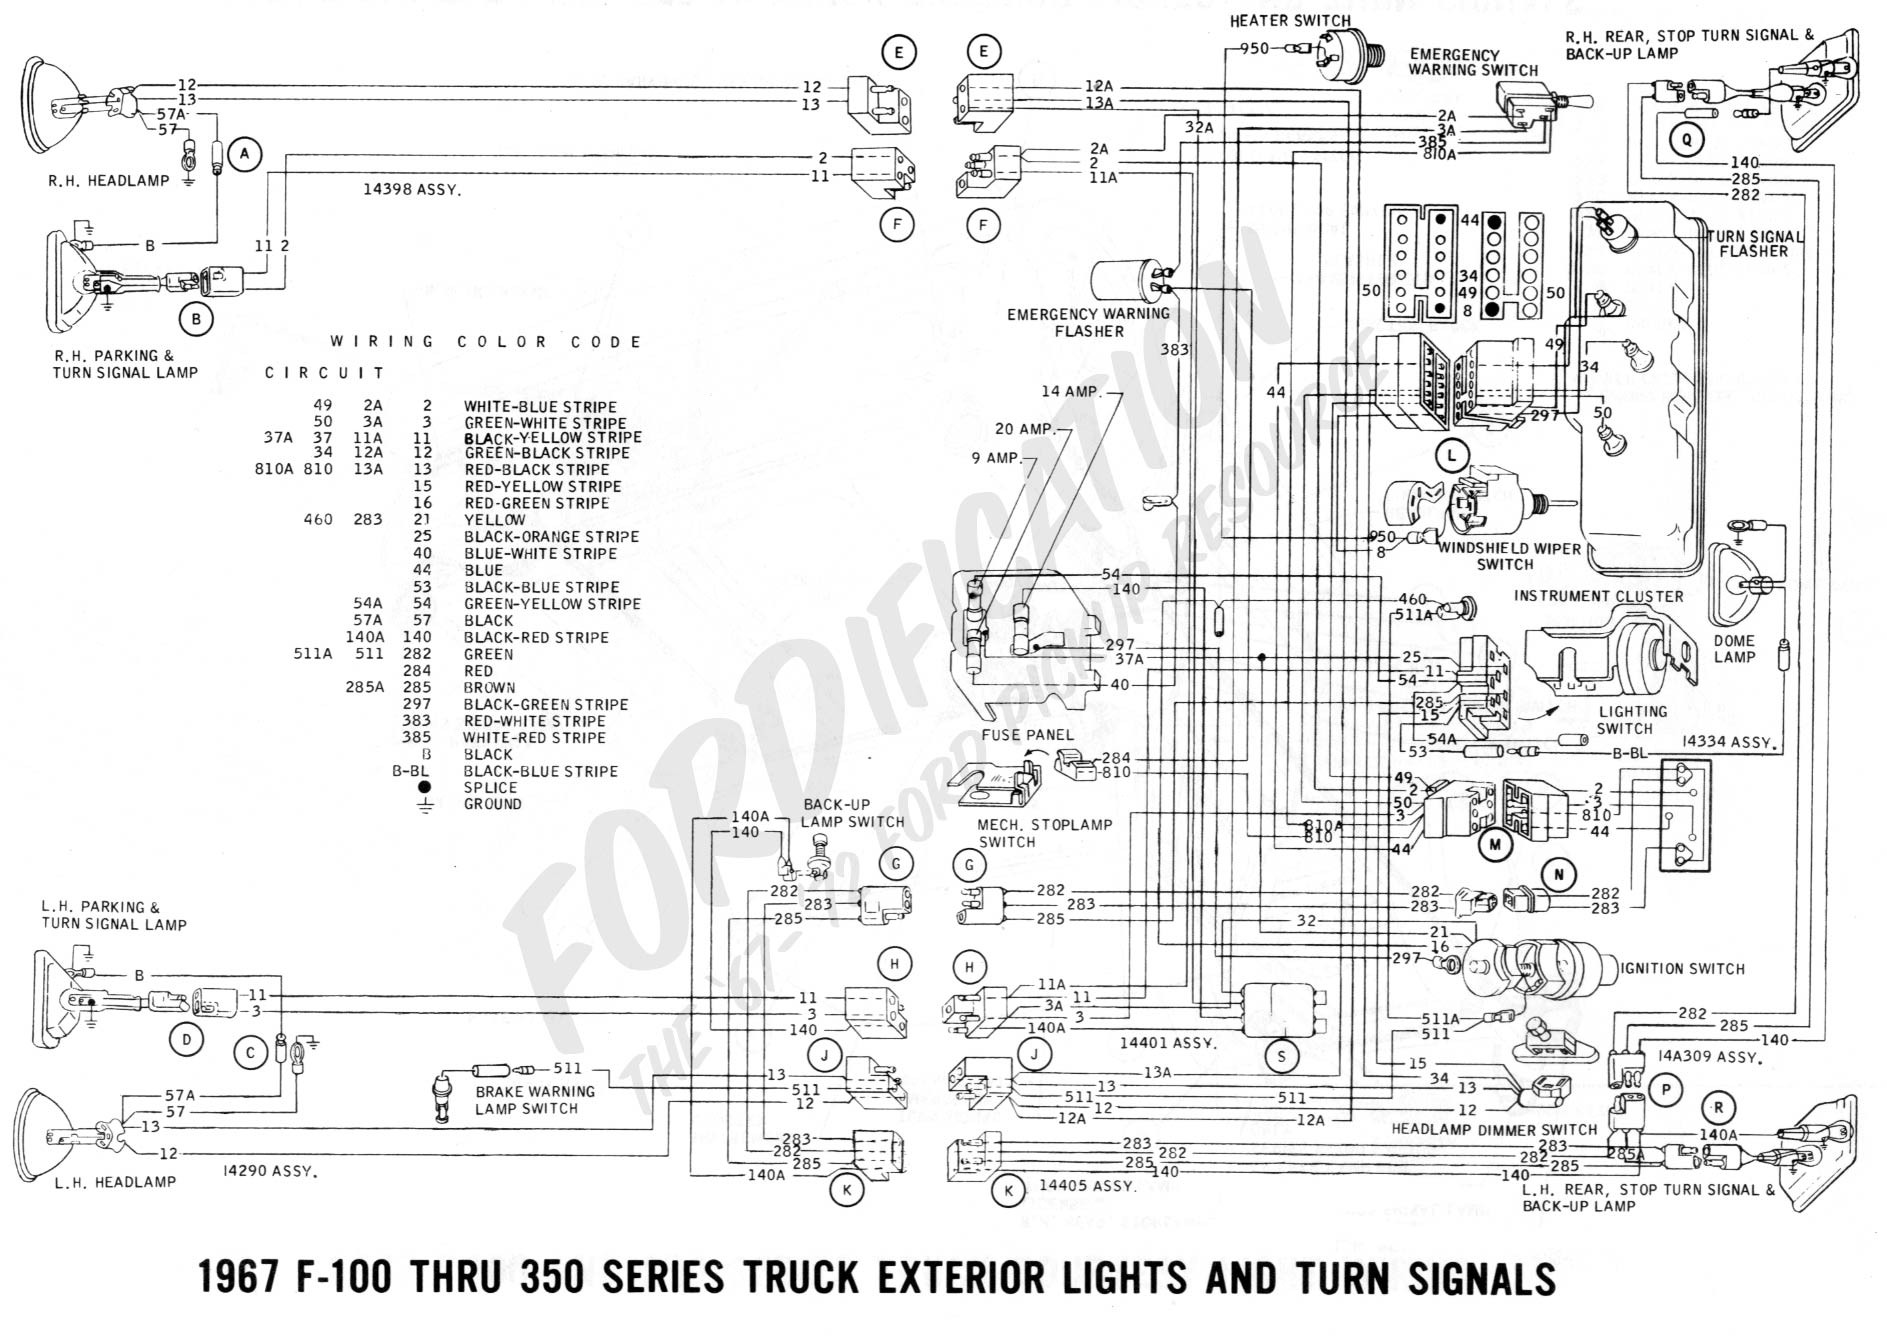 Ford F250 Trailer Wiring Diagram 77 ford F250 Wiring